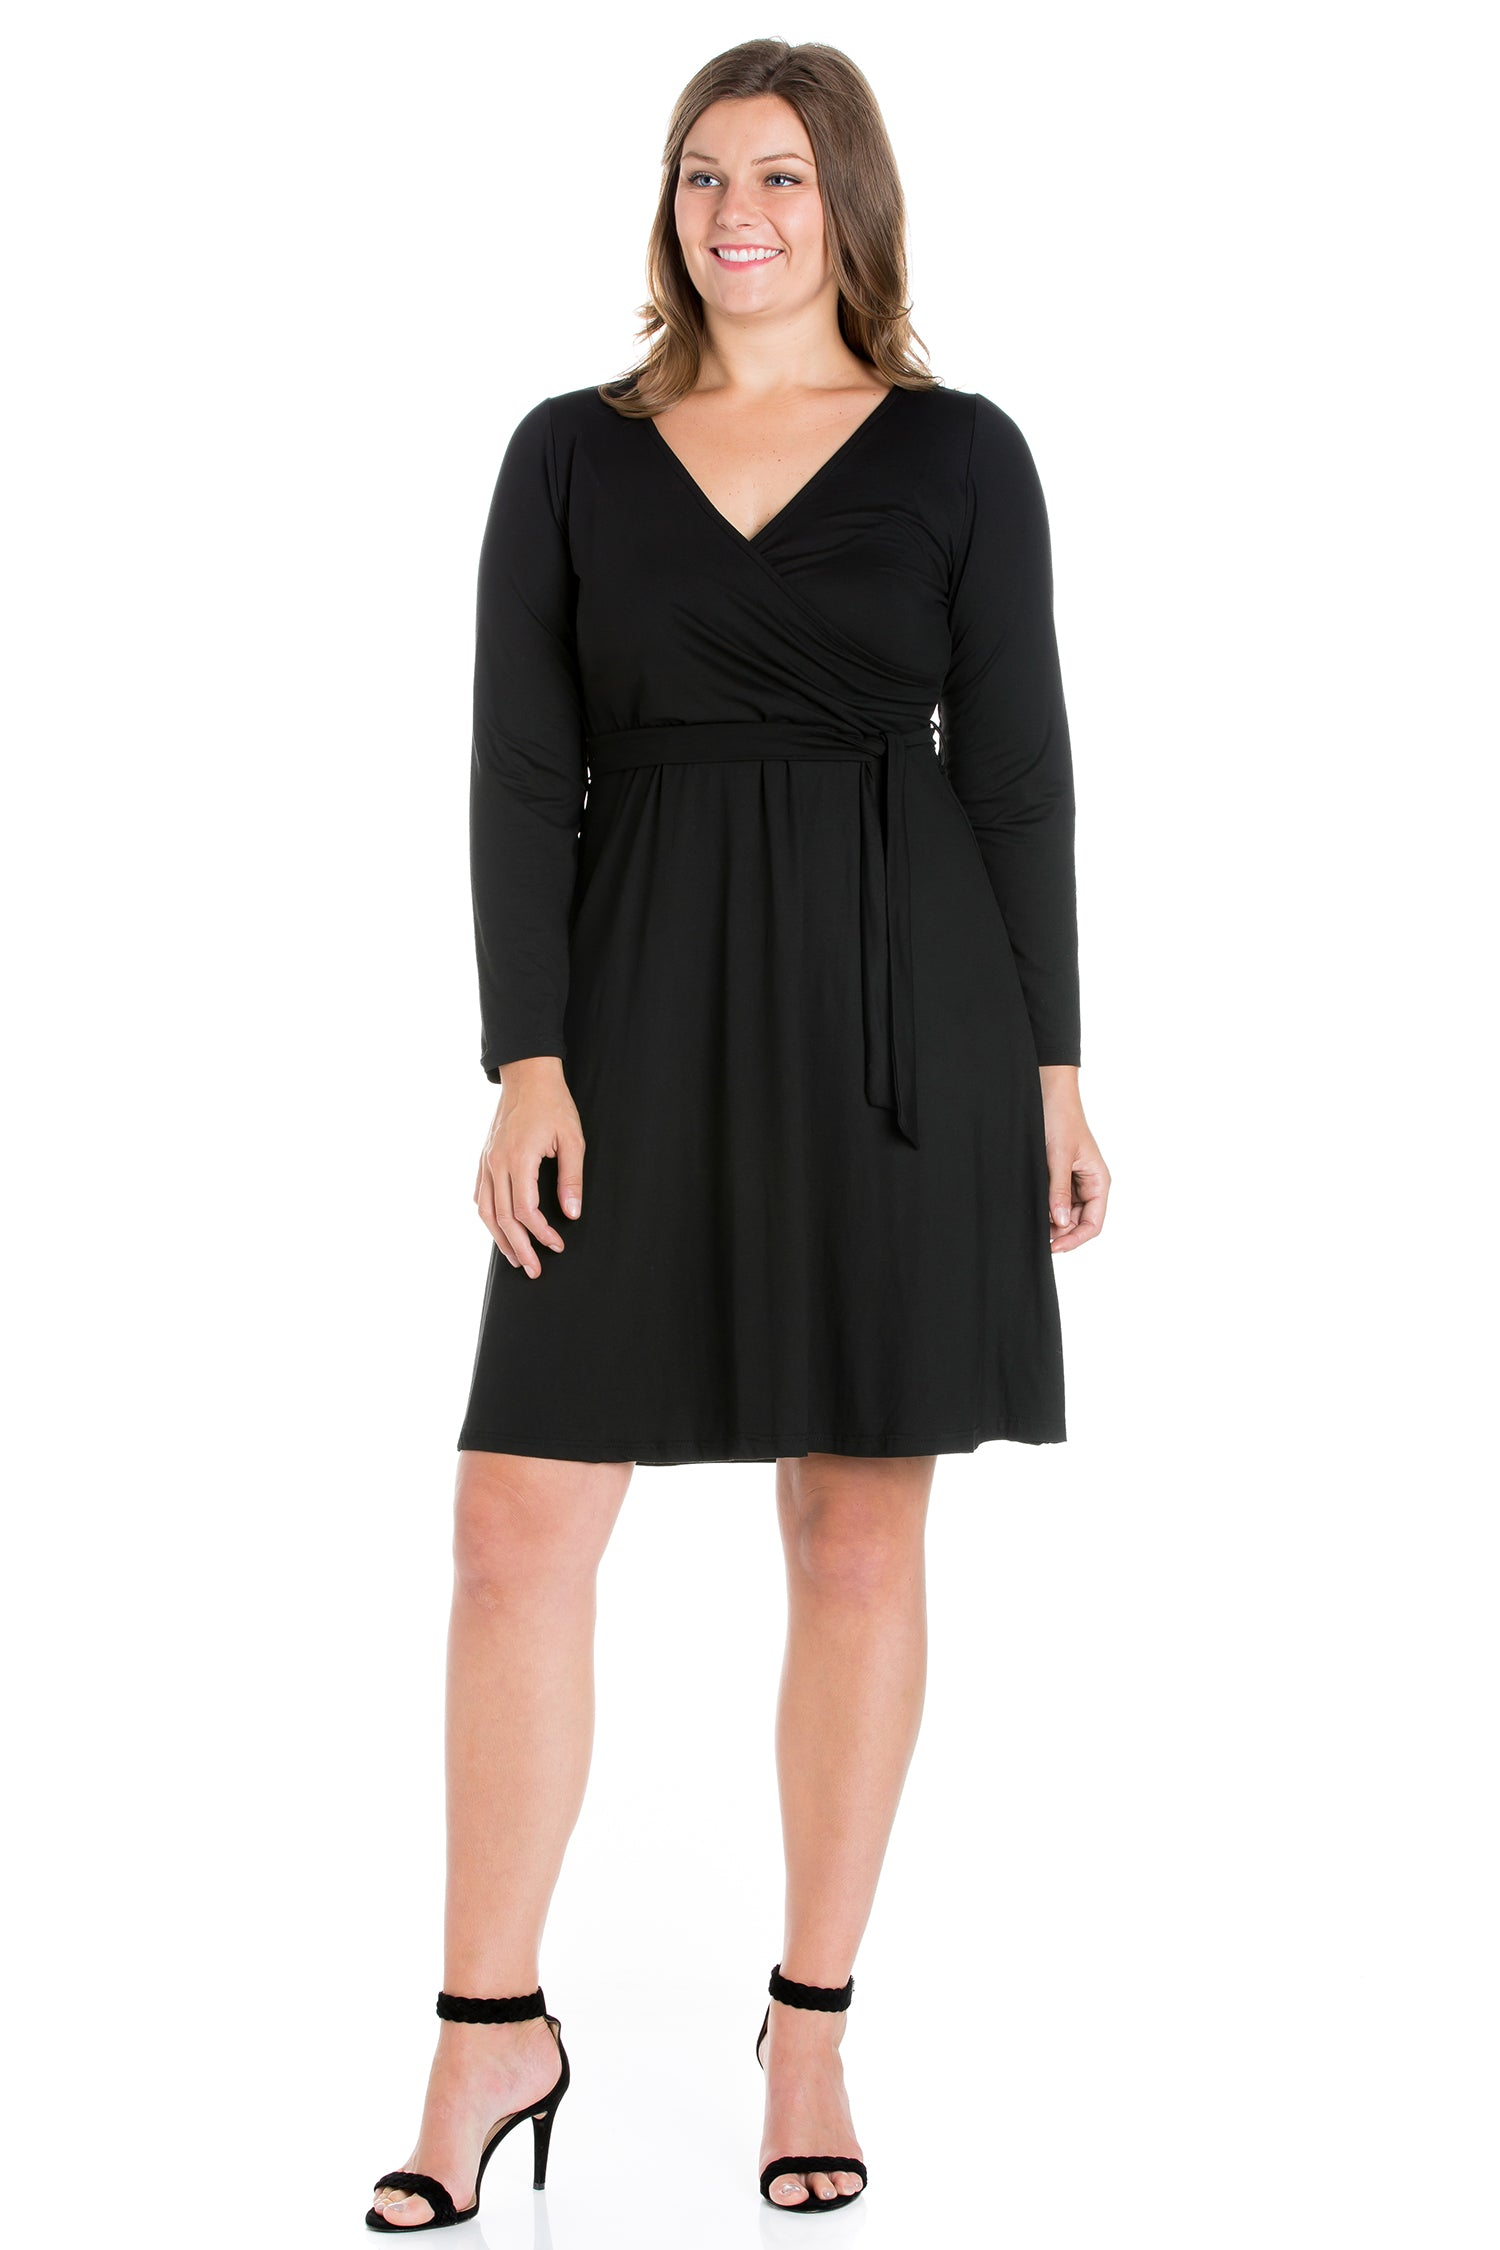 24seven Comfort Apparel Chic V-Neck Long Sleeve Belted Plus Size Dress-DRESSES-24Seven Comfort Apparel-BLACK-1X-24/7 Comfort Apparel